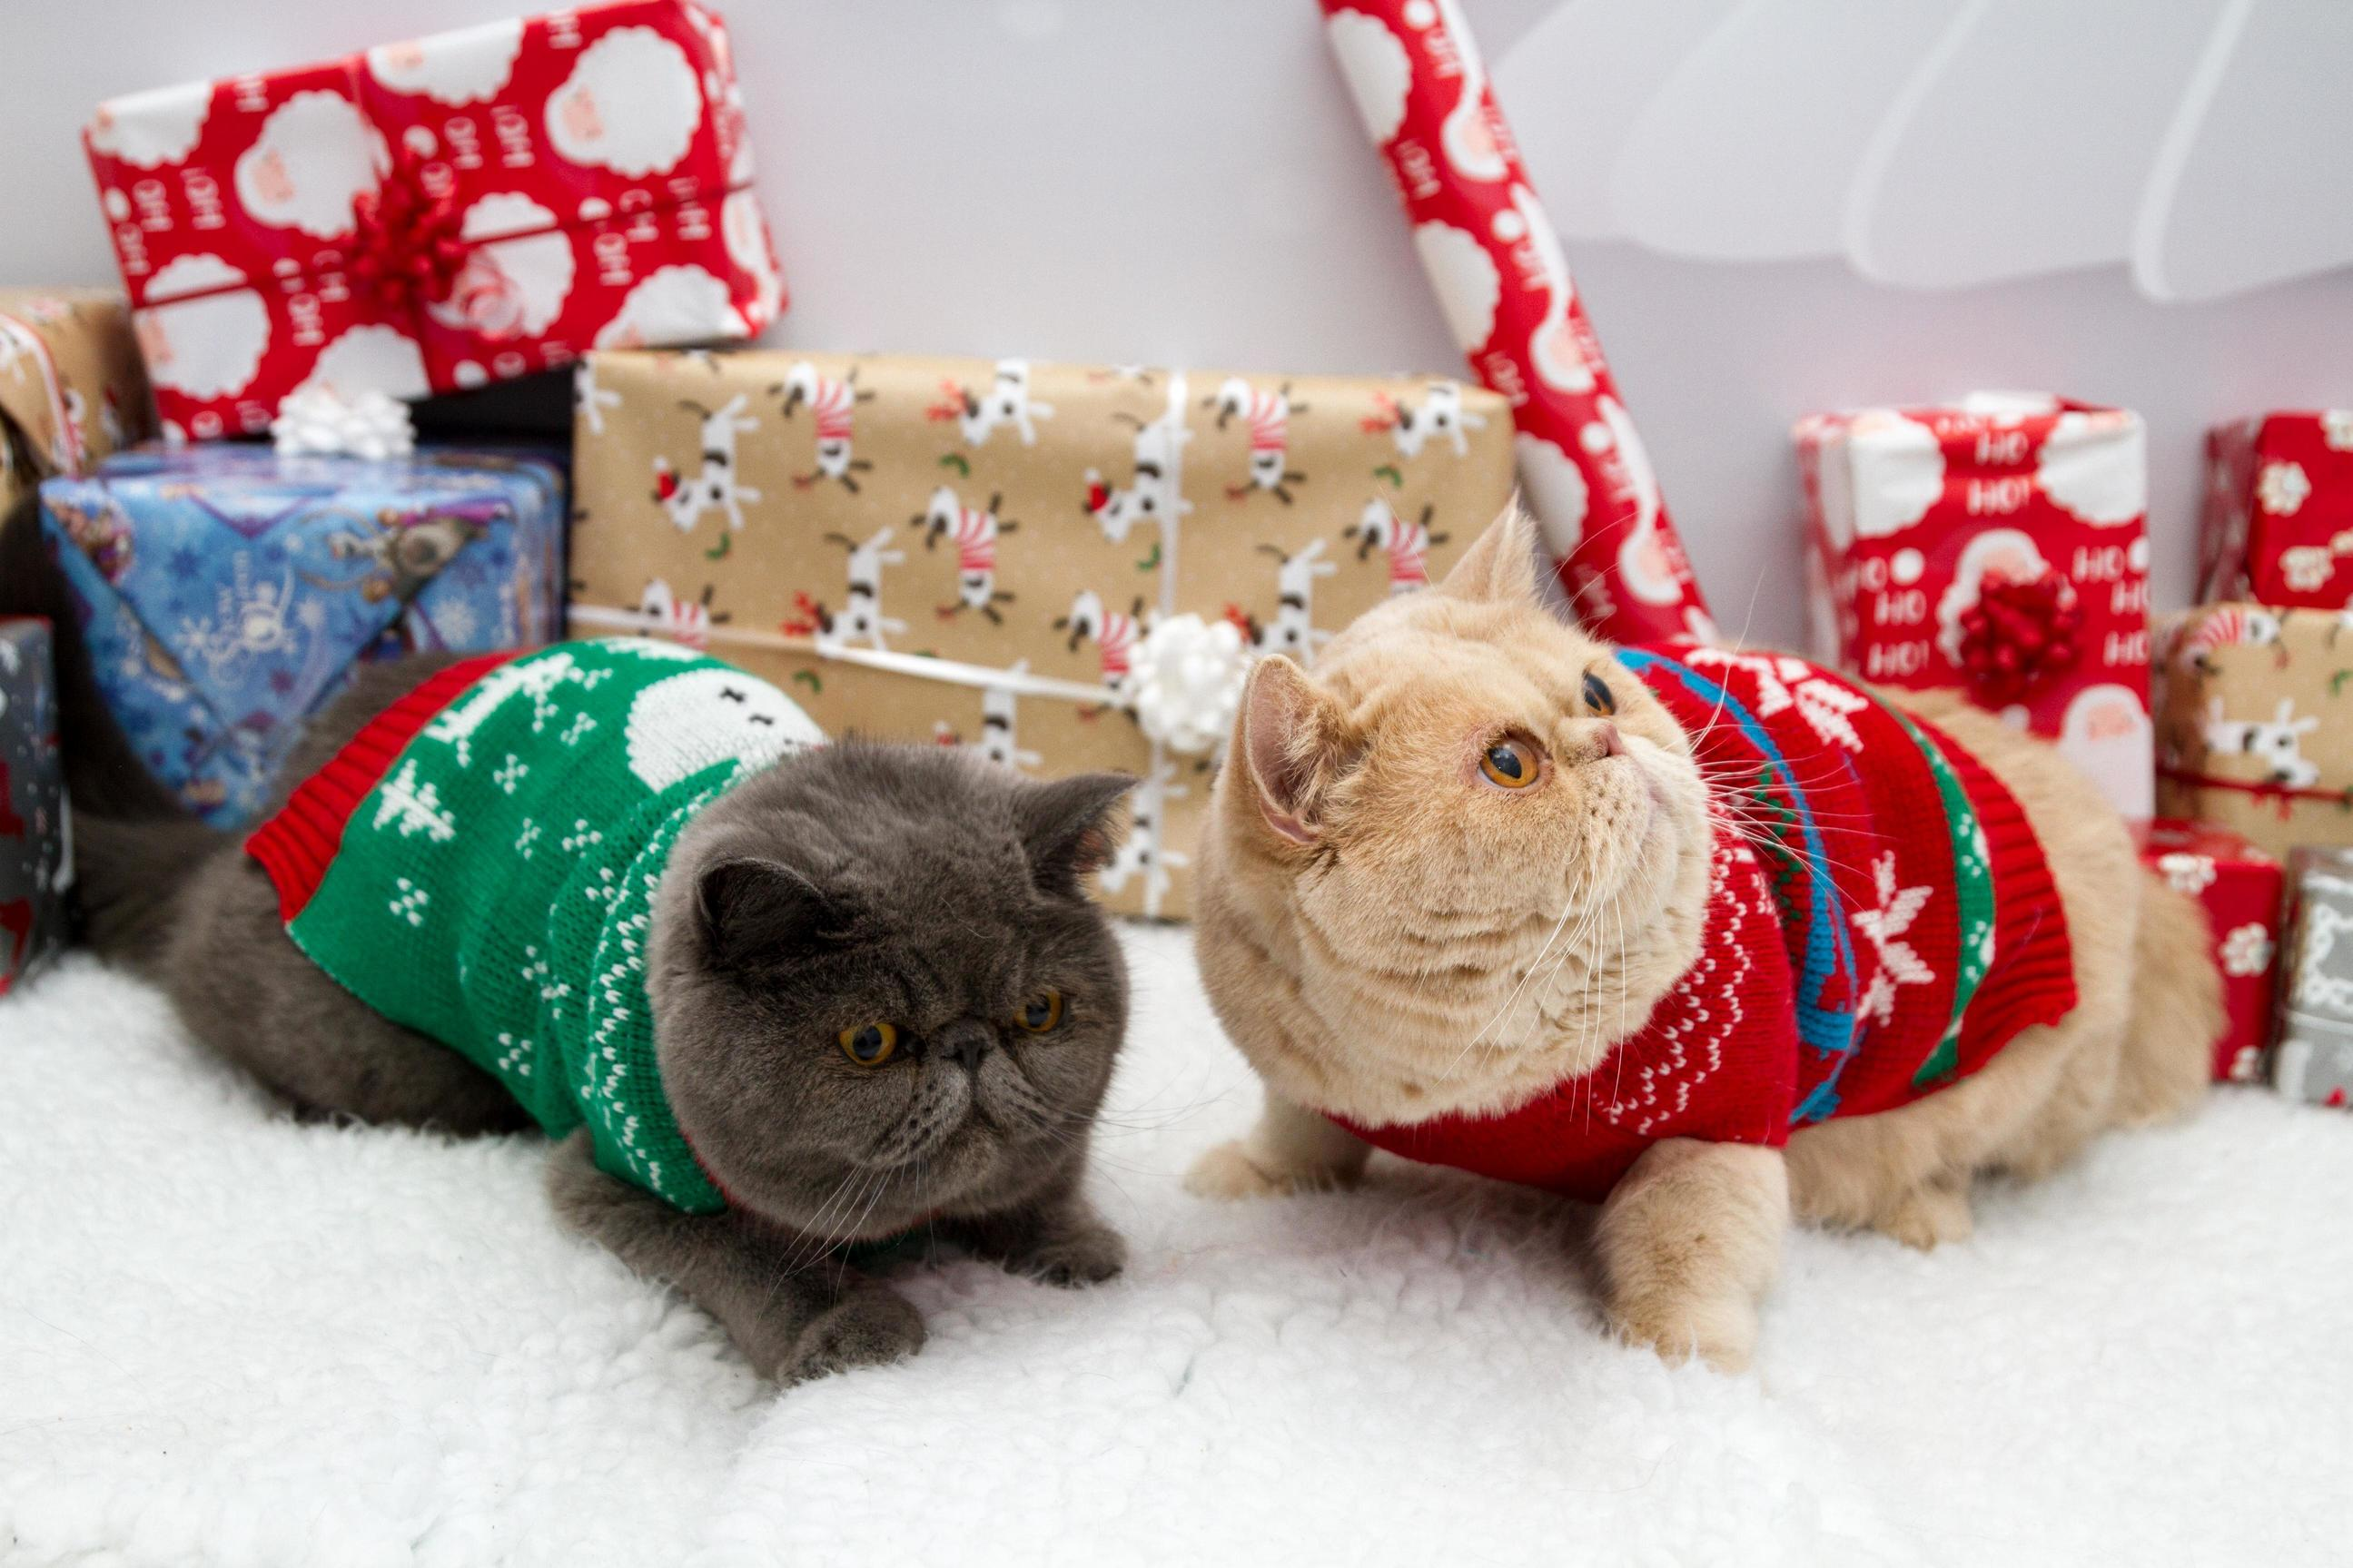 Our local vets held a christmas themed pet photoshoot